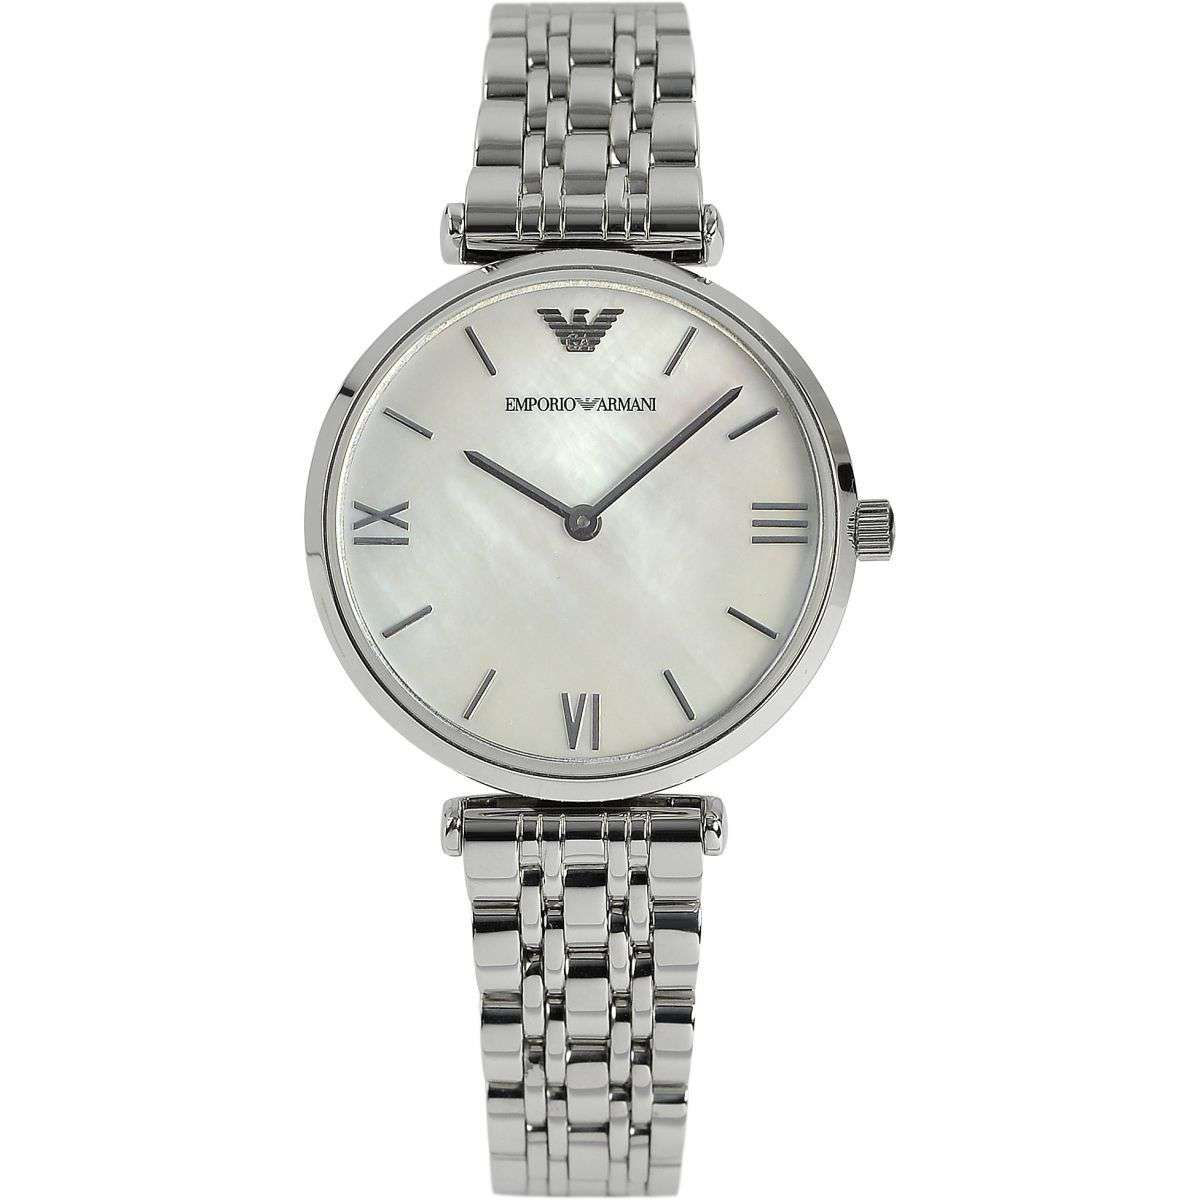 Emporio Armani AR 1682 Ladies Watch Steel Umisfashion Store